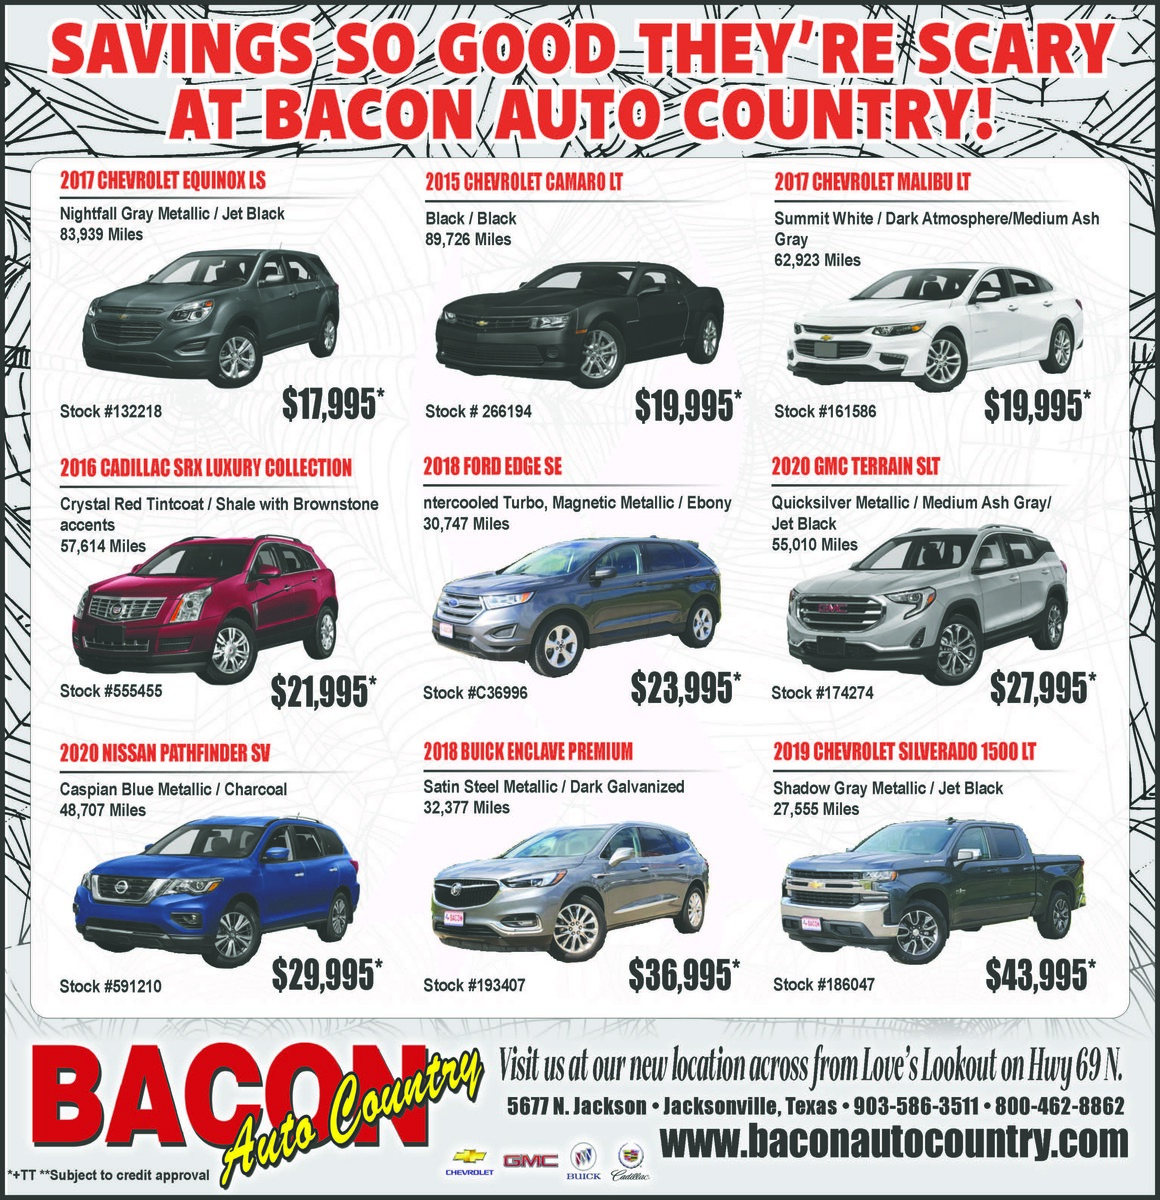 Scary Savings at Bacon Auto Country